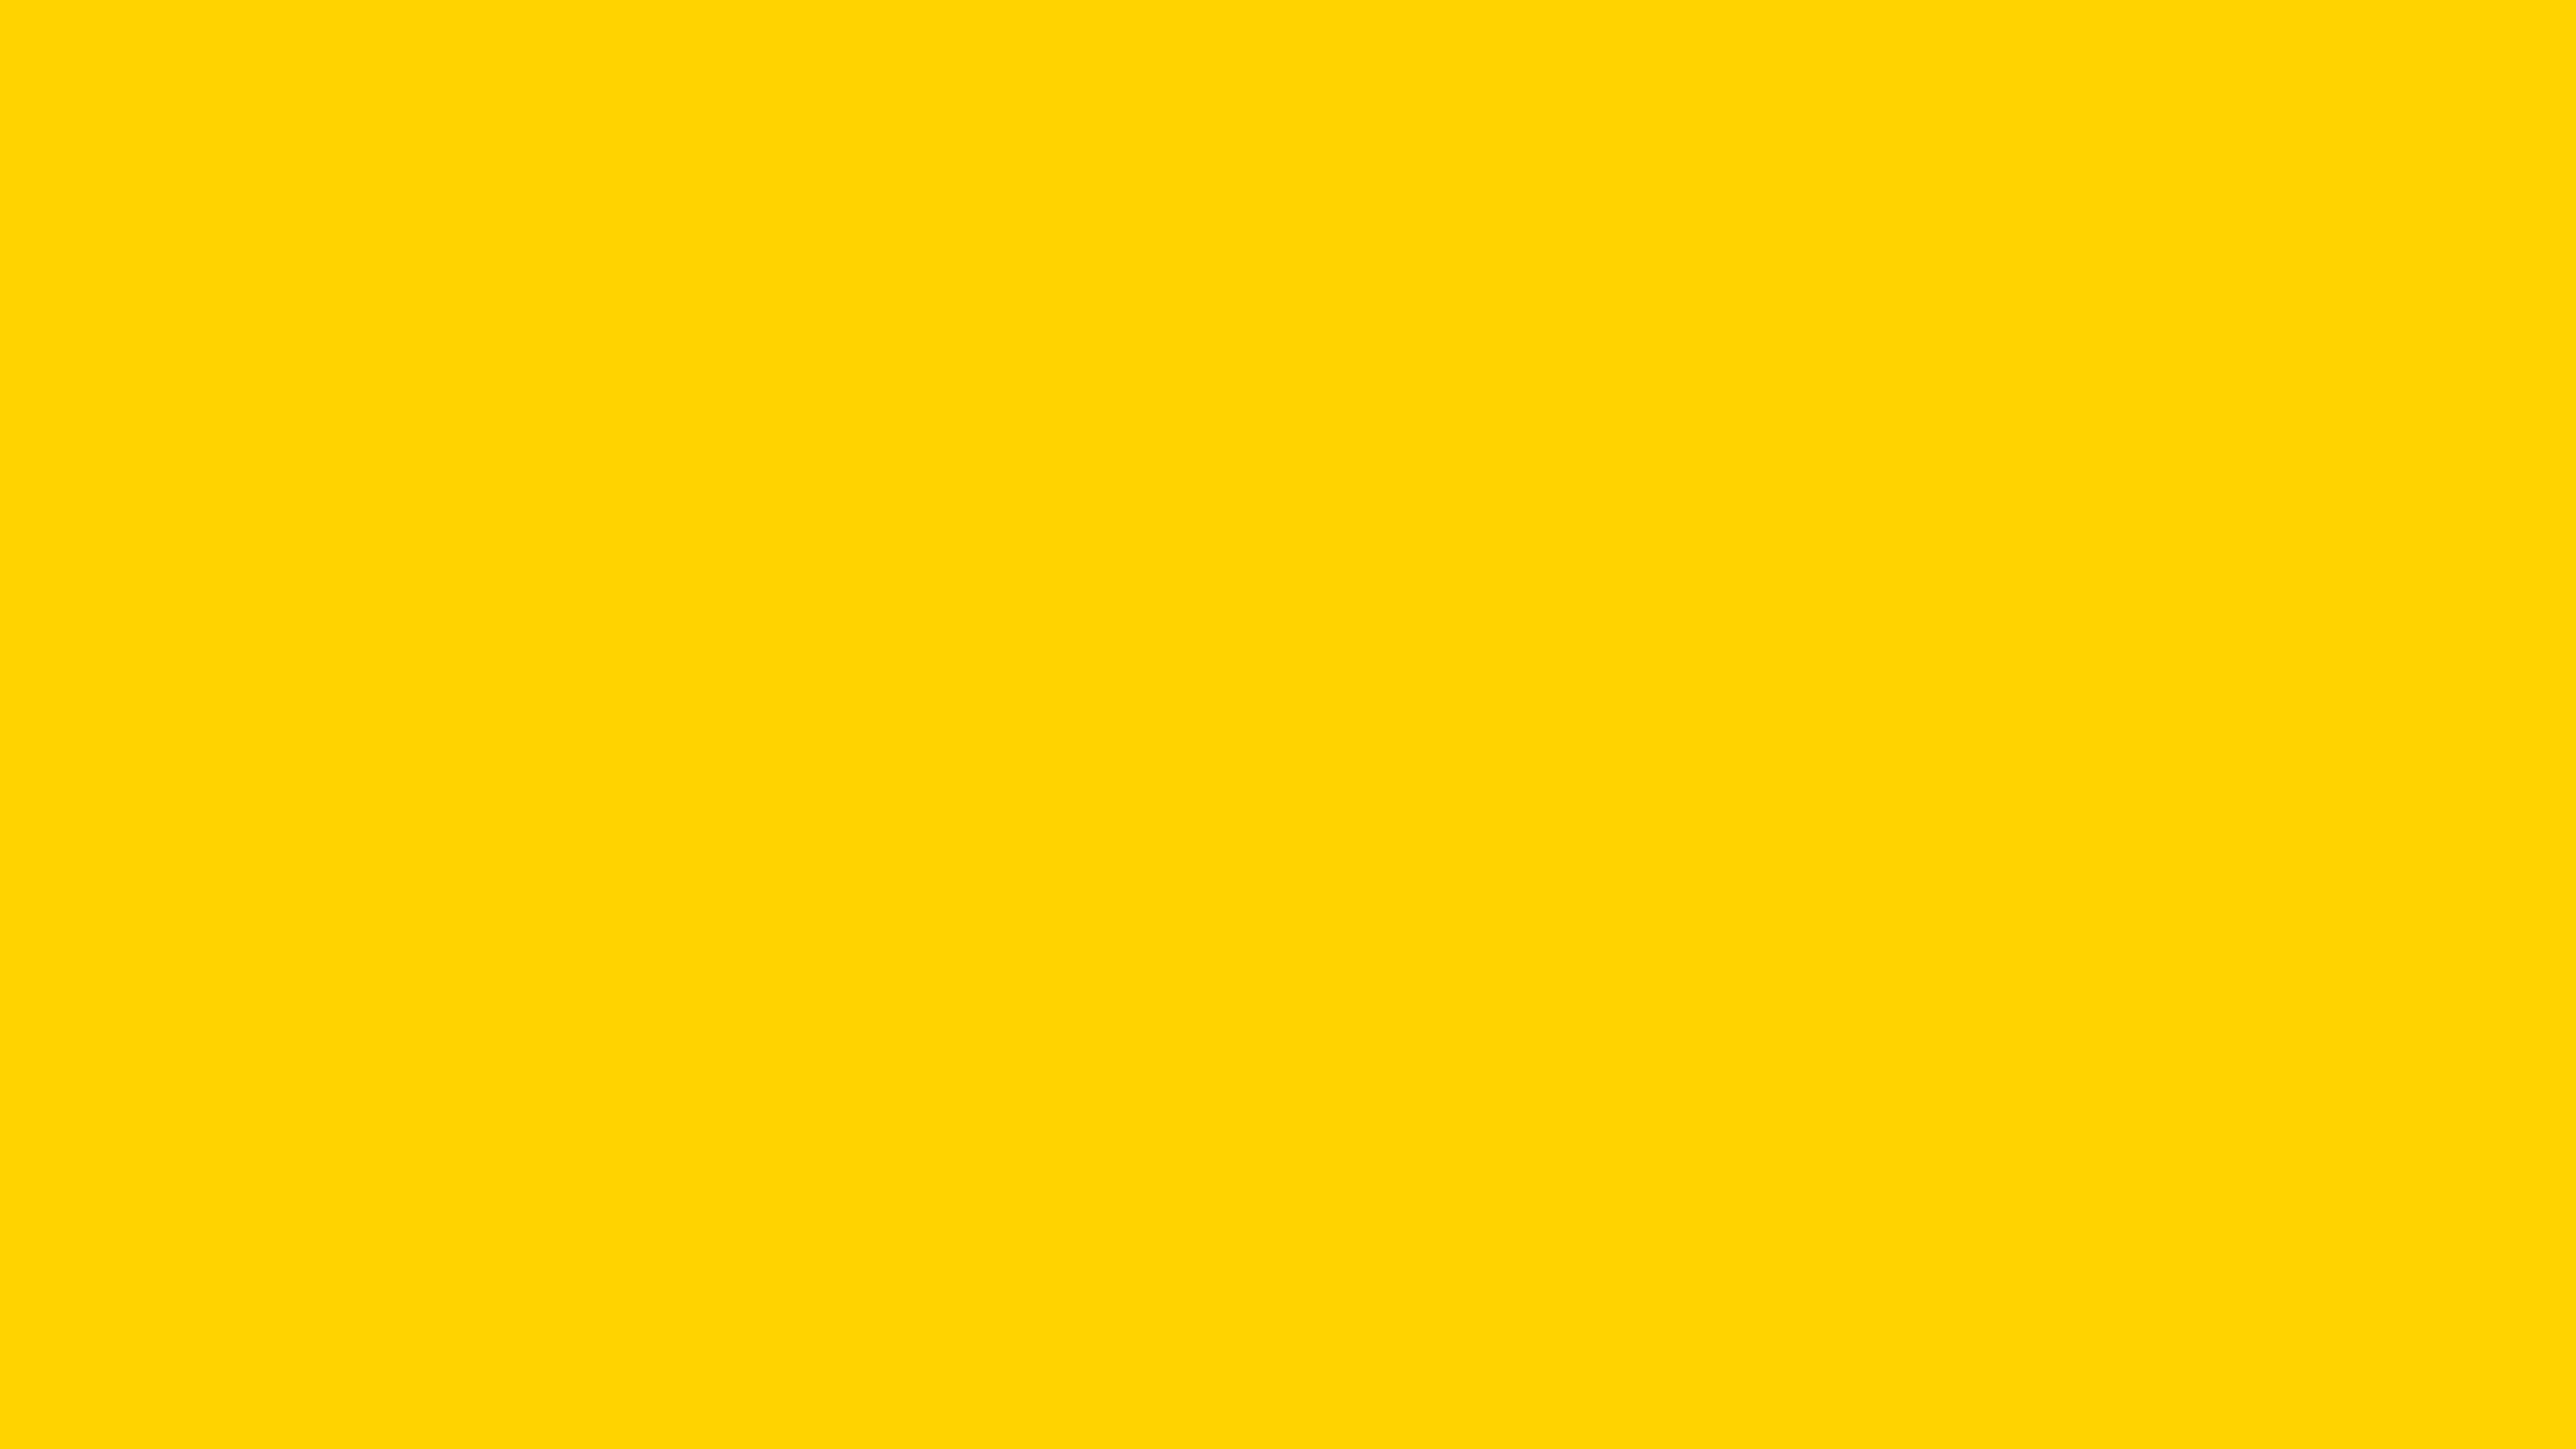 5120x2880 Yellow NCS Solid Color Background